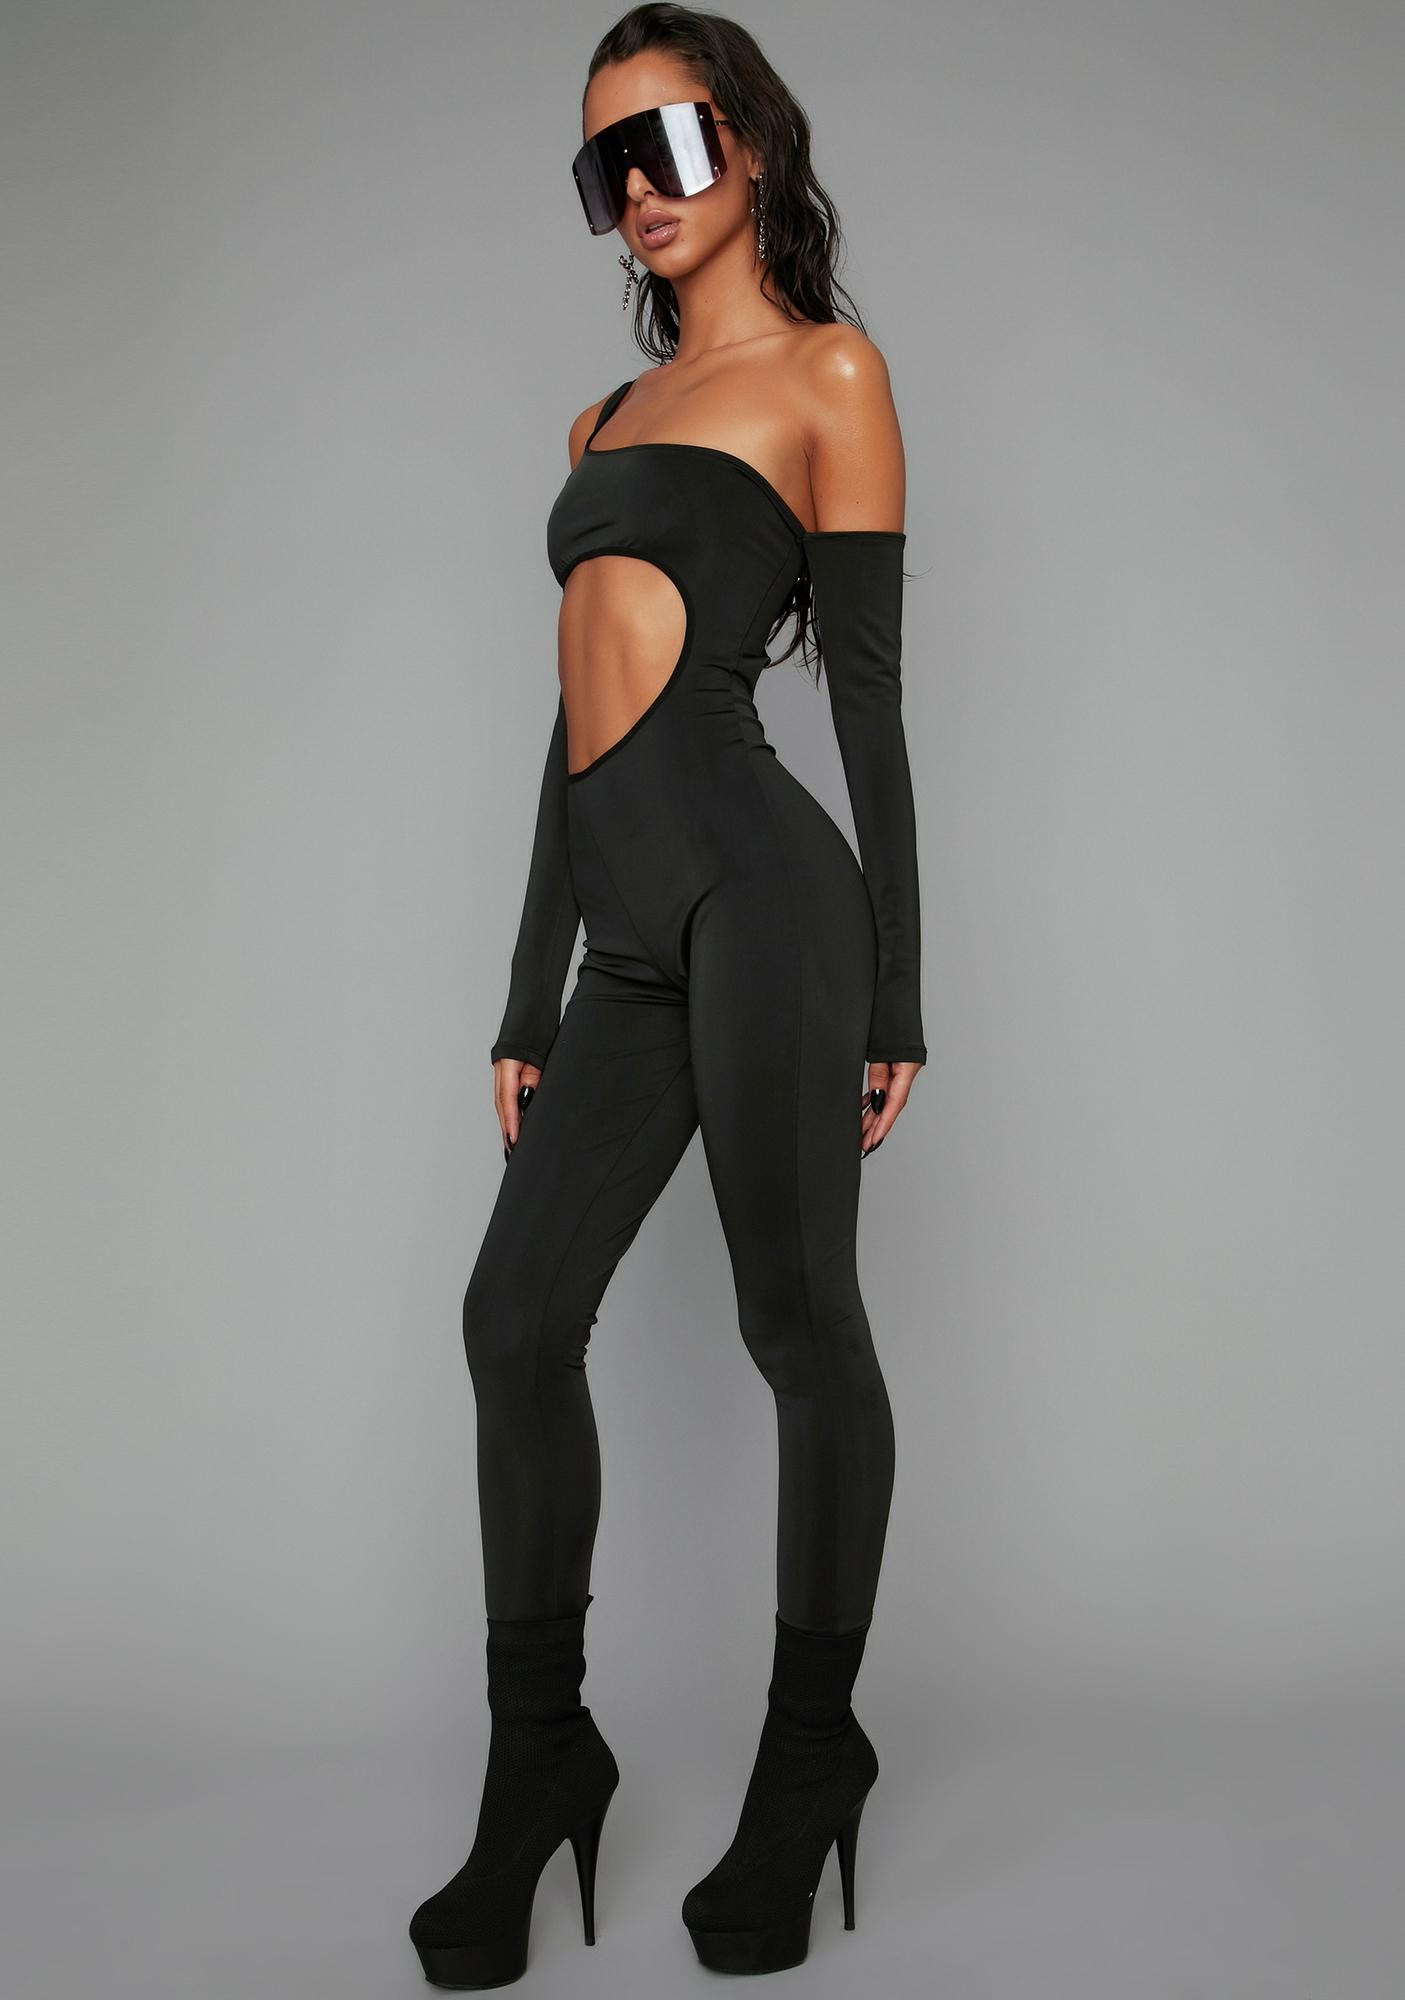 Poster Grl Fashion Week Cut Out Catsuit